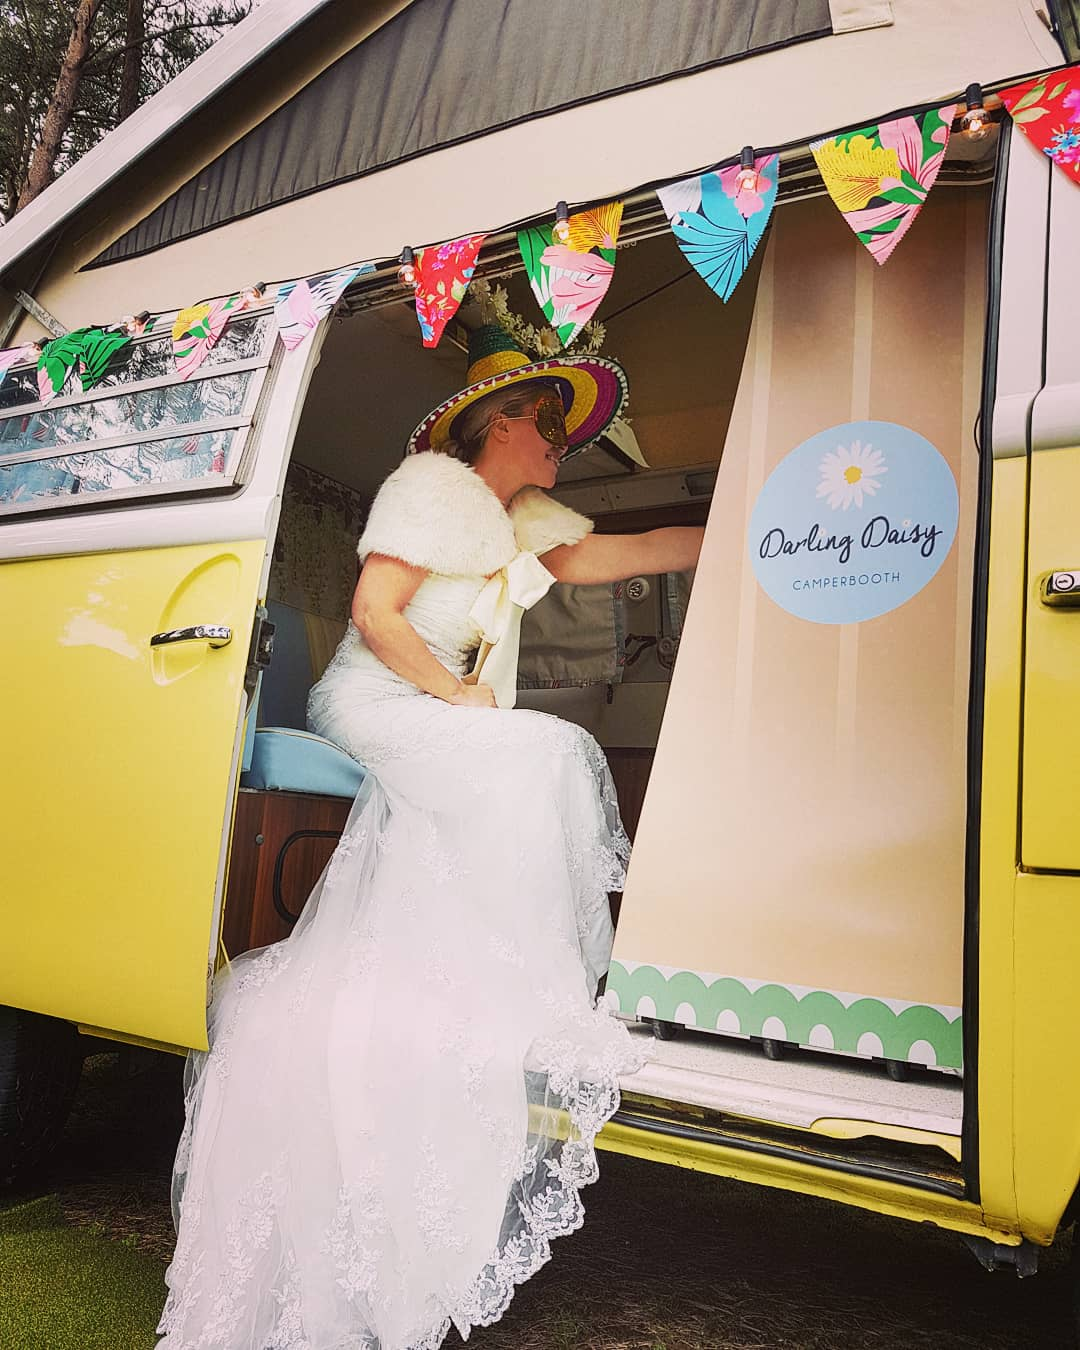 DarlingDaisyCamperbooth